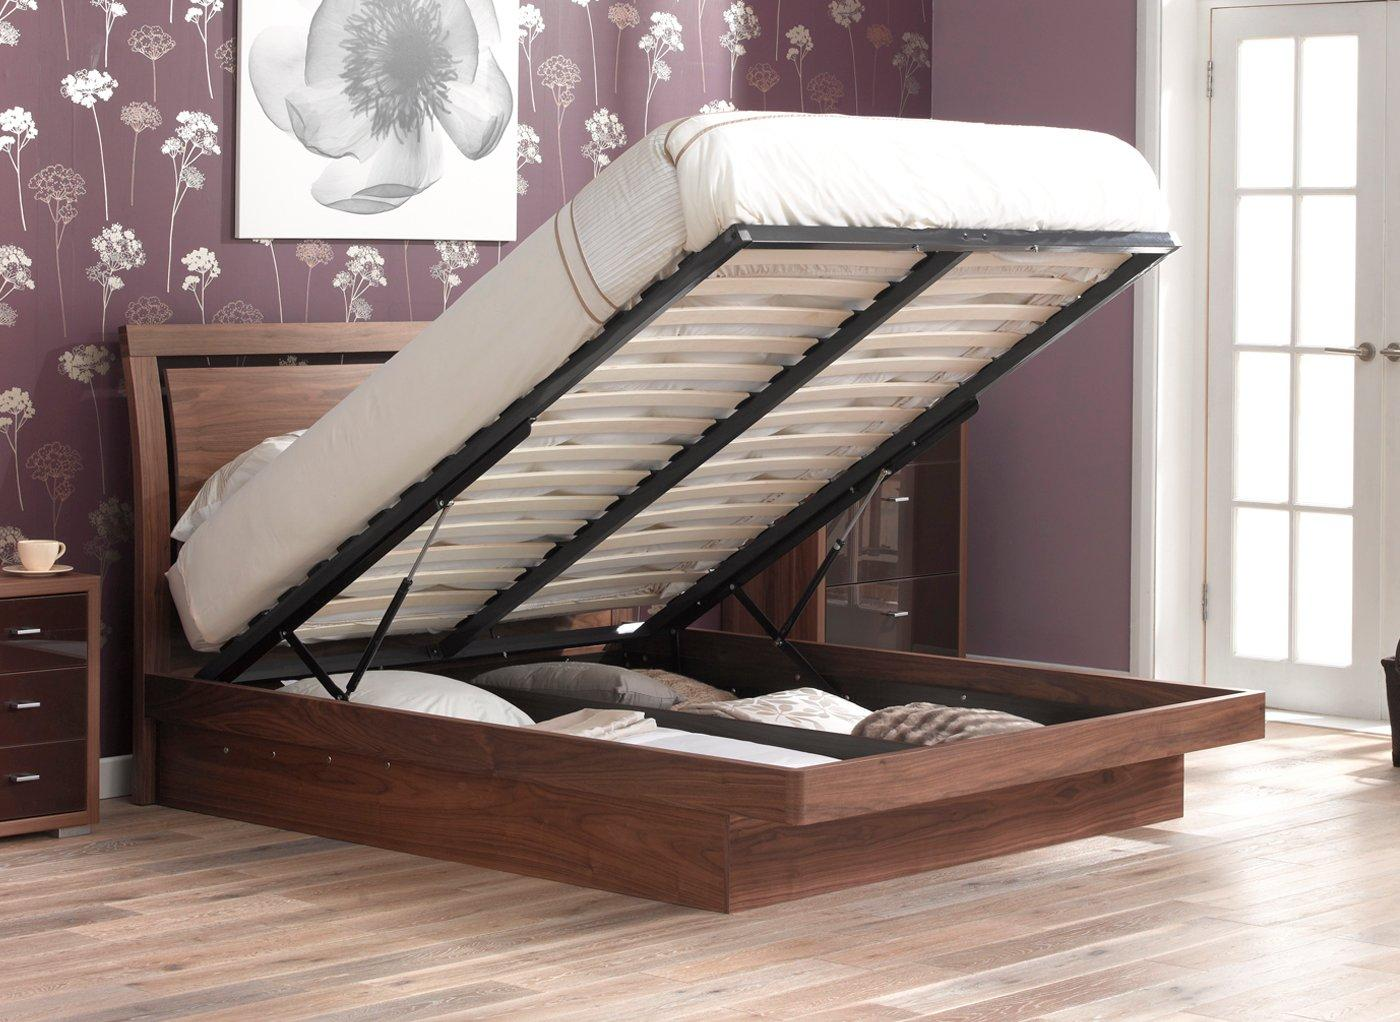 Dreams Isabella Wooden Ottoman Bed Frame from £479